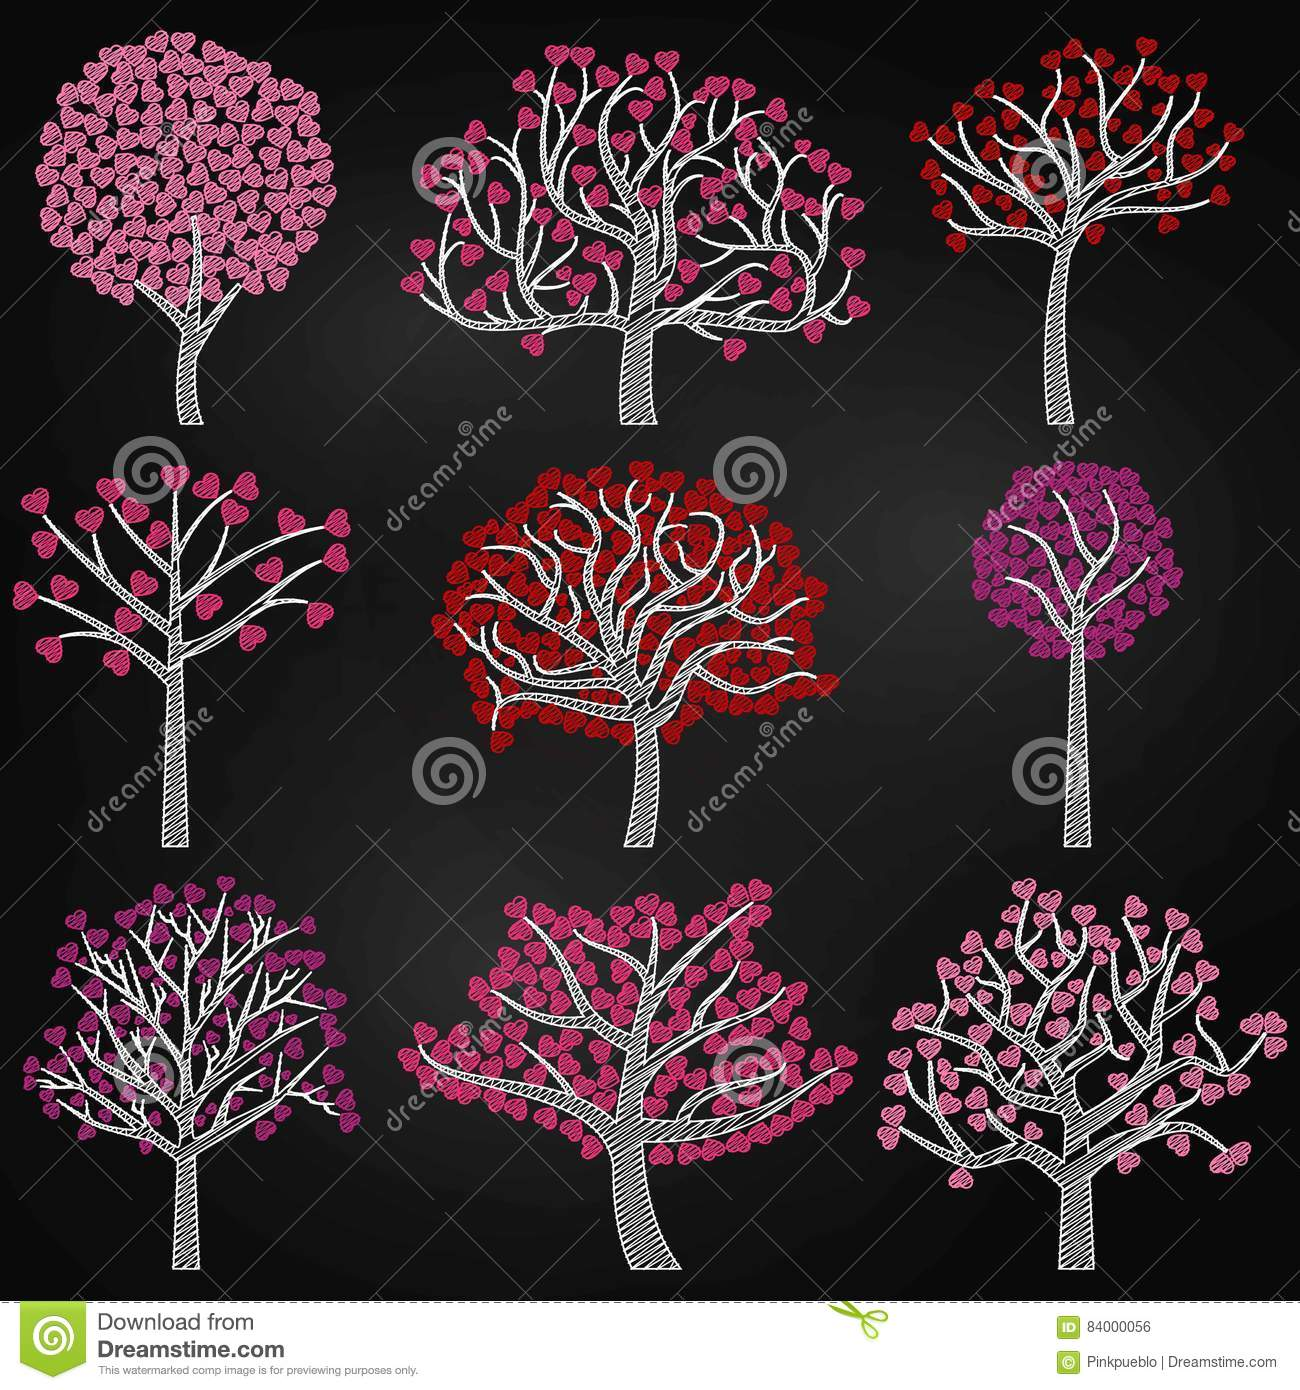 Chalkboard valentines day tree silhouettes with heart shaped leaves chalkboard valentines day tree silhouettes with heart shaped leaves mightylinksfo